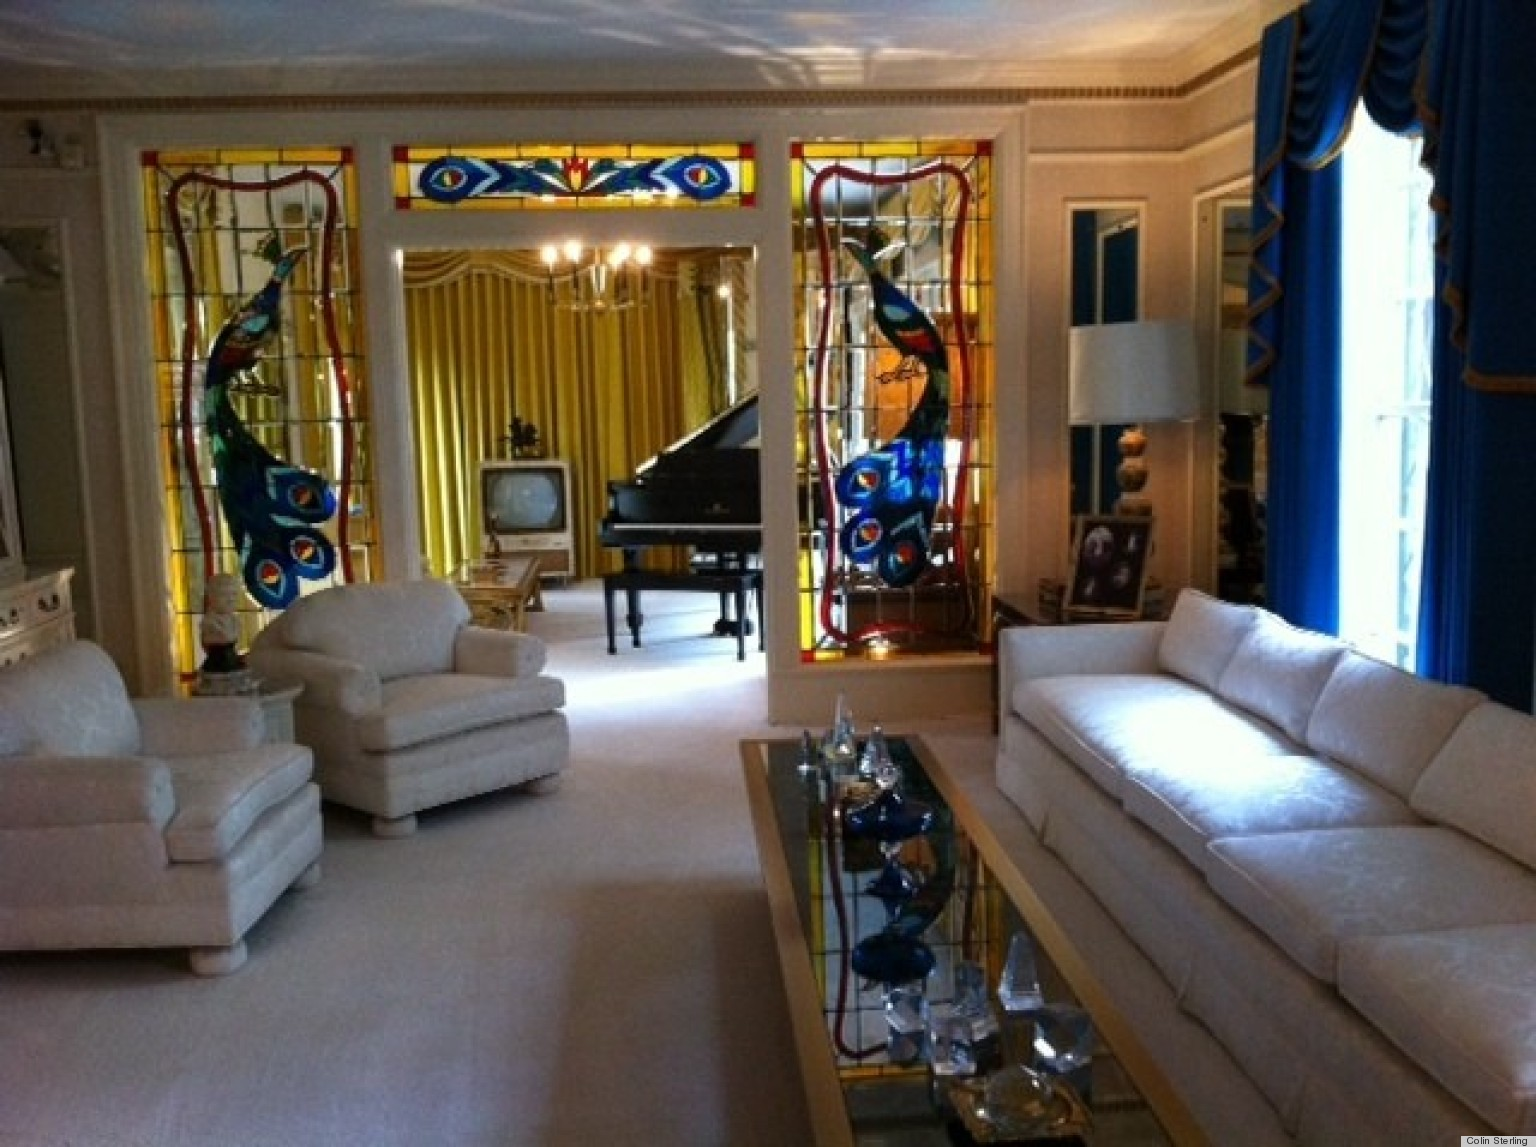 Elvis Presley's Birthday By Taking A Look Inside Graceland (PHOTOS